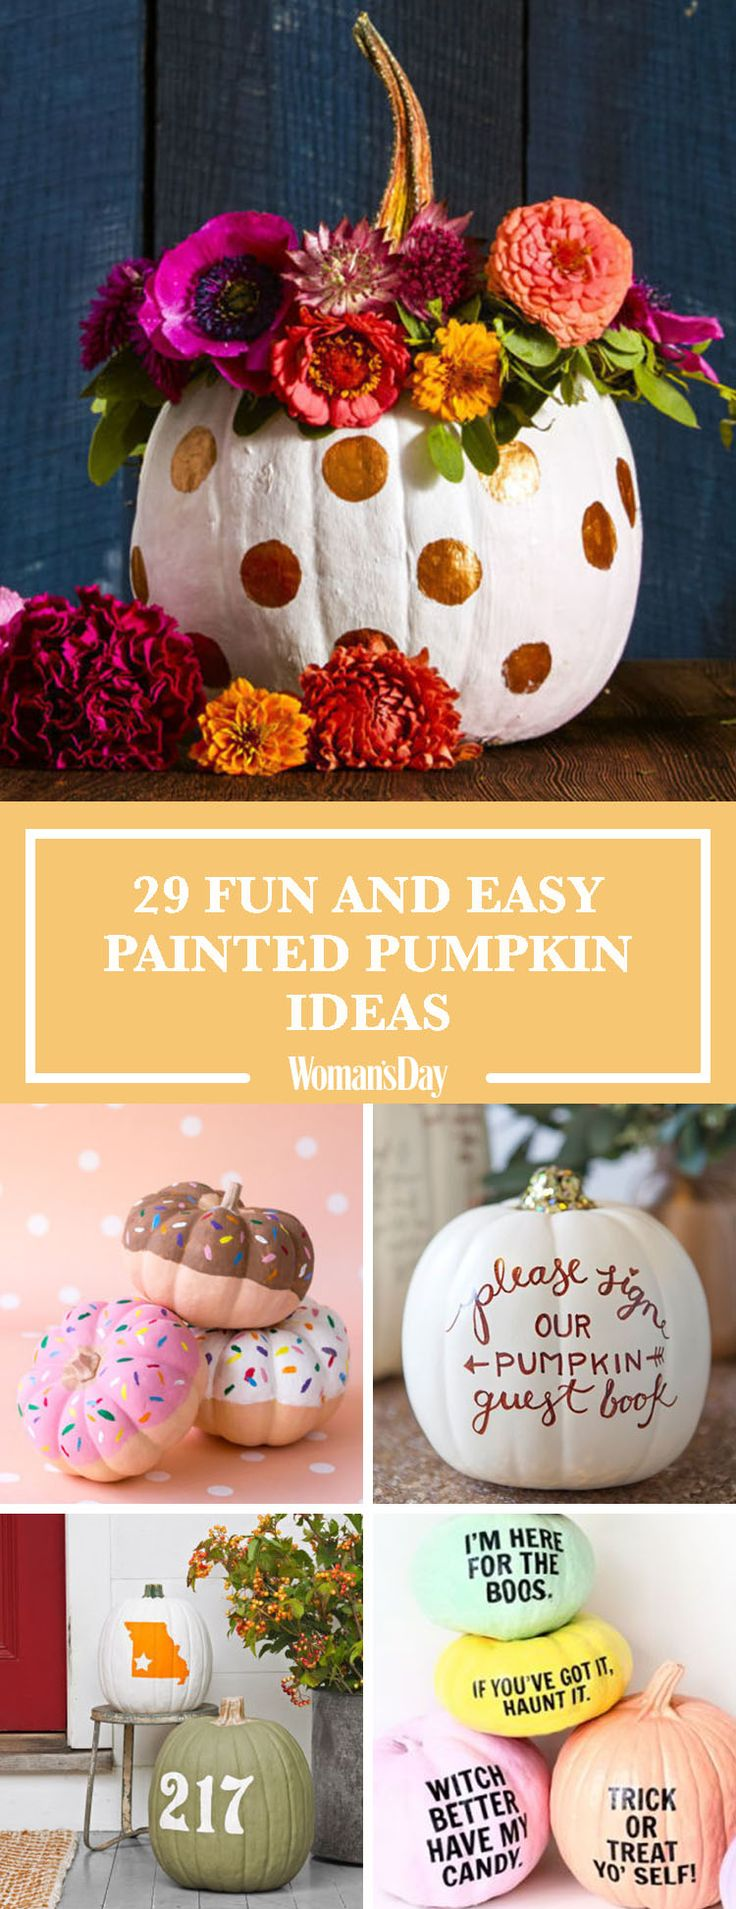 Save these painted pumpkin ideas for later by pinning this image and follow Woman's Day on Pinterest for more. (Halloween Pumpkins)